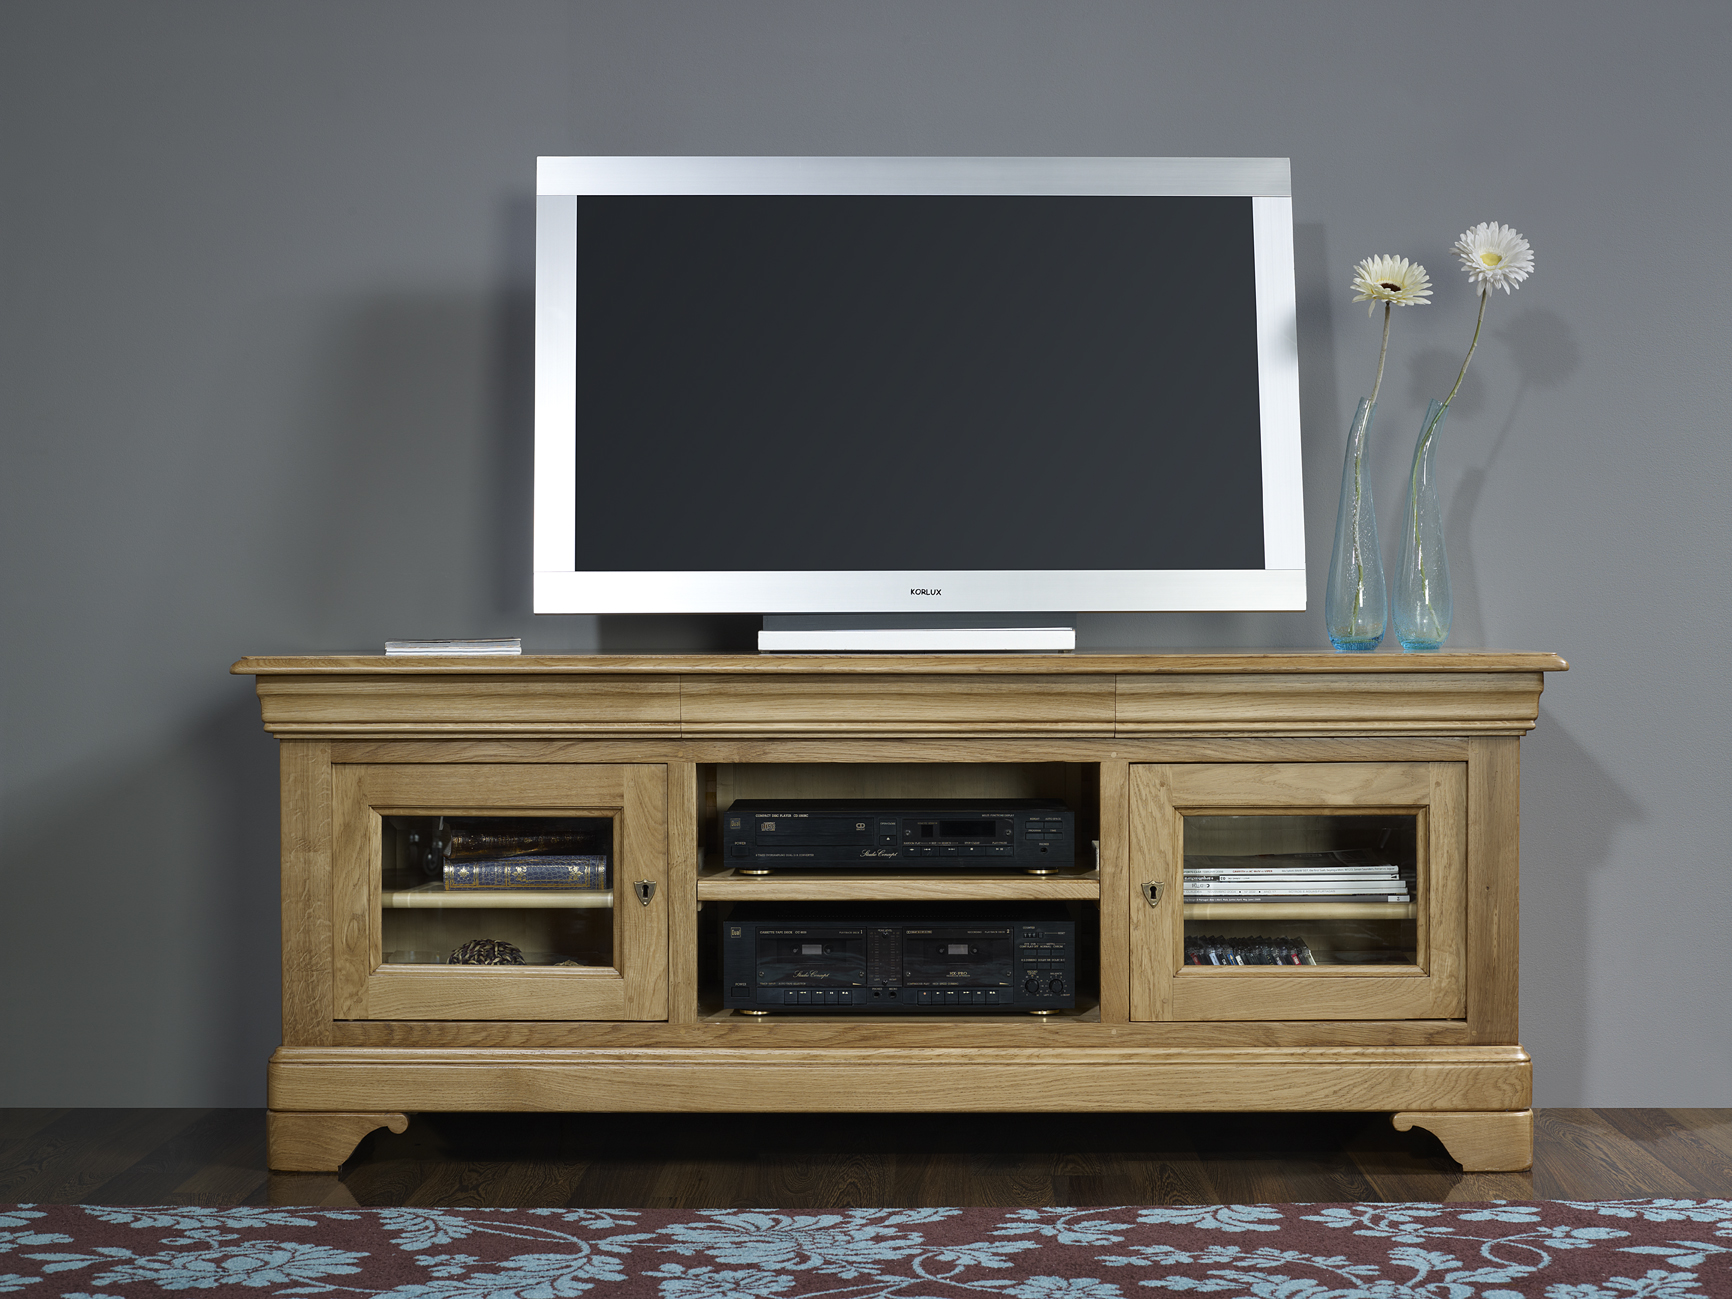 meuble tv 16 9 me en ch ne massif de style louis philippe hauteur 75 cm meuble en ch ne. Black Bedroom Furniture Sets. Home Design Ideas